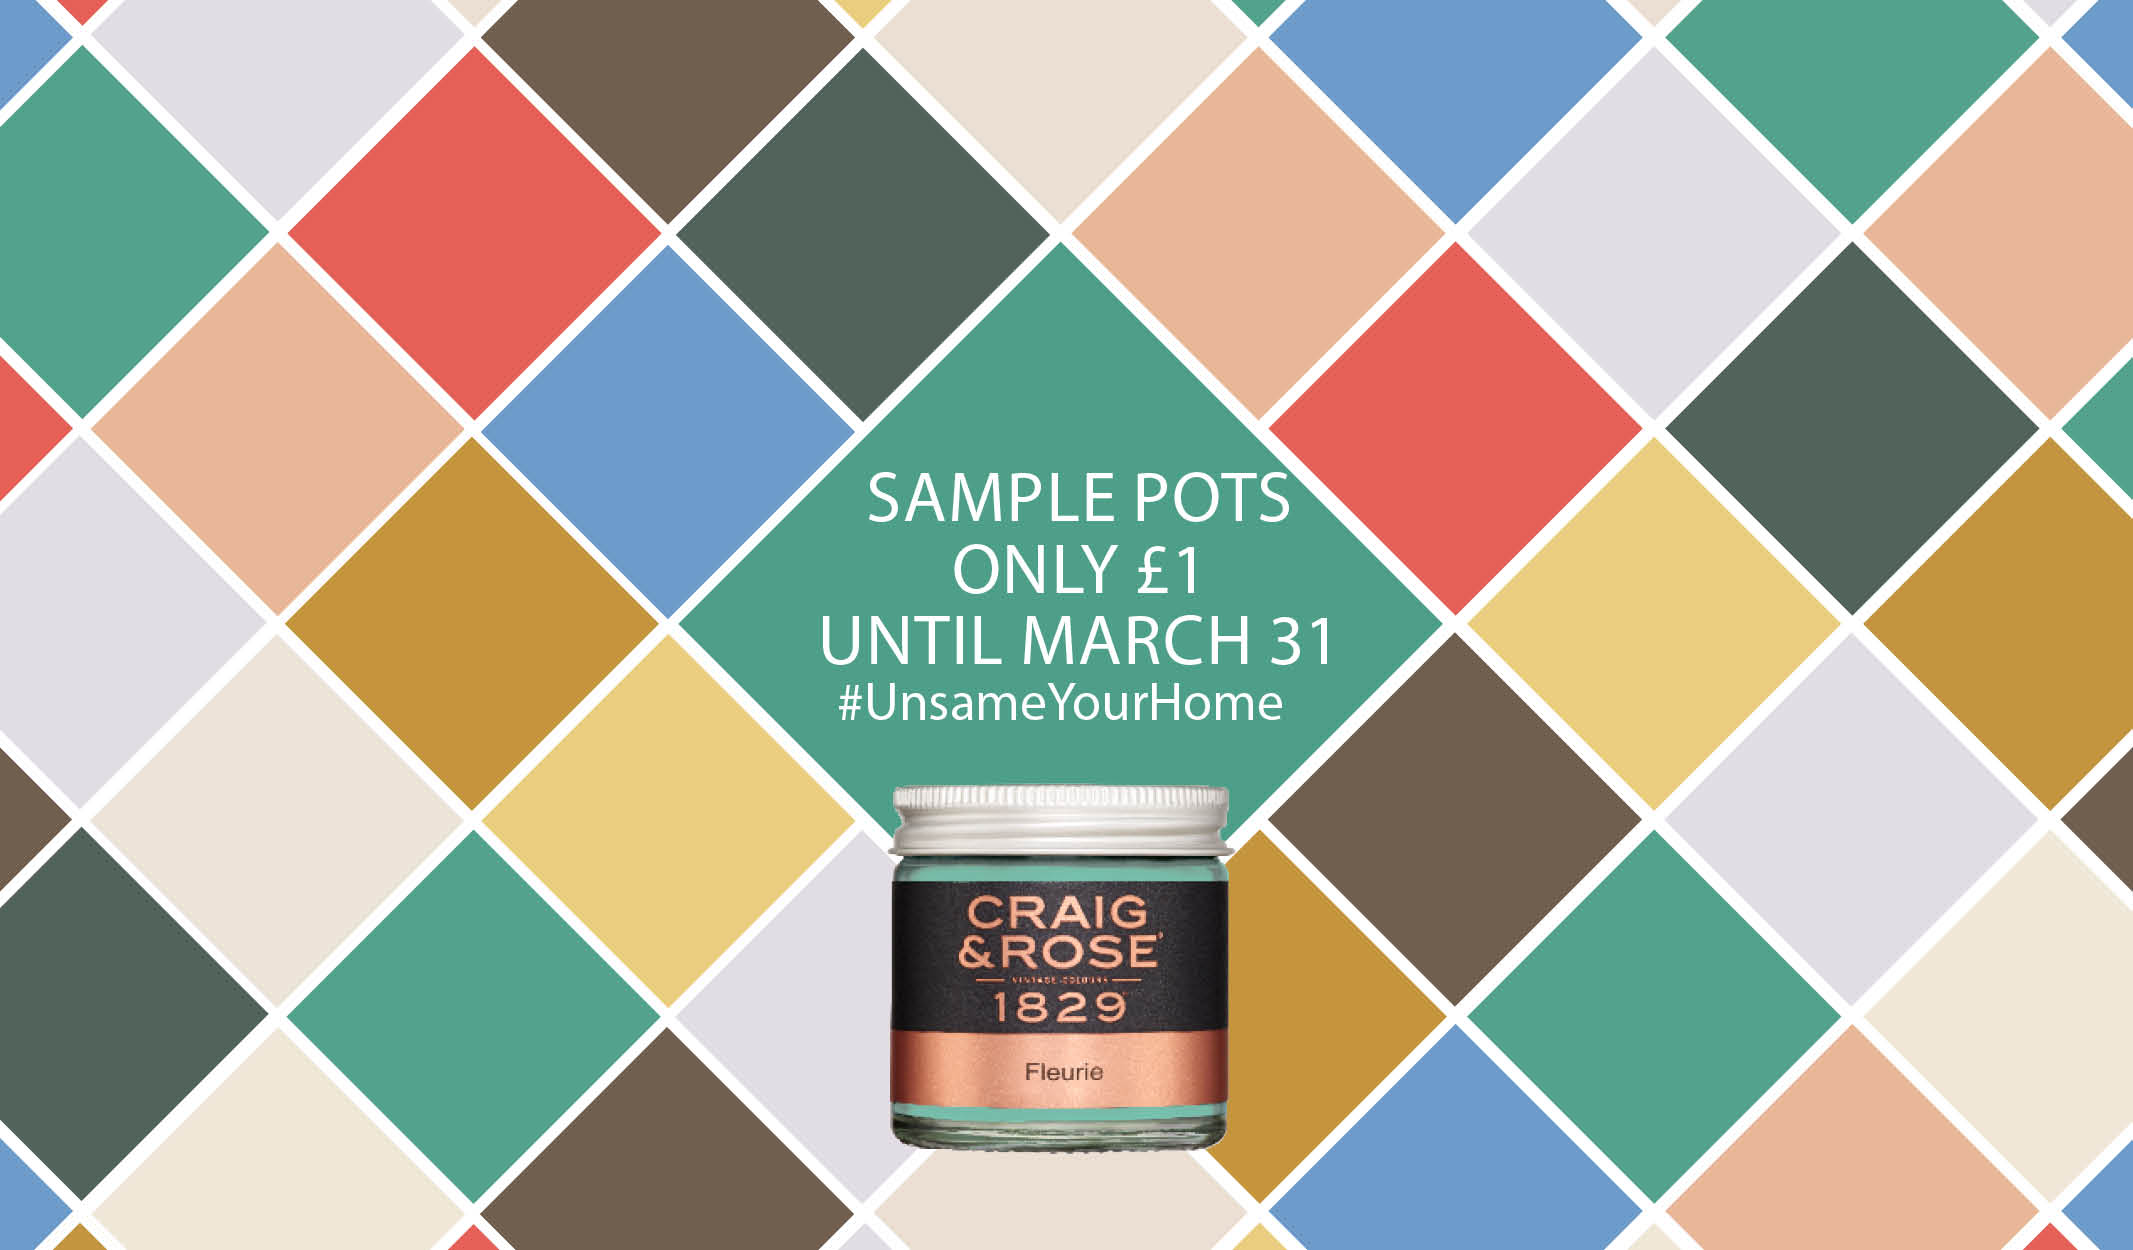 Pick up a sample for £1 with Craig & Rose